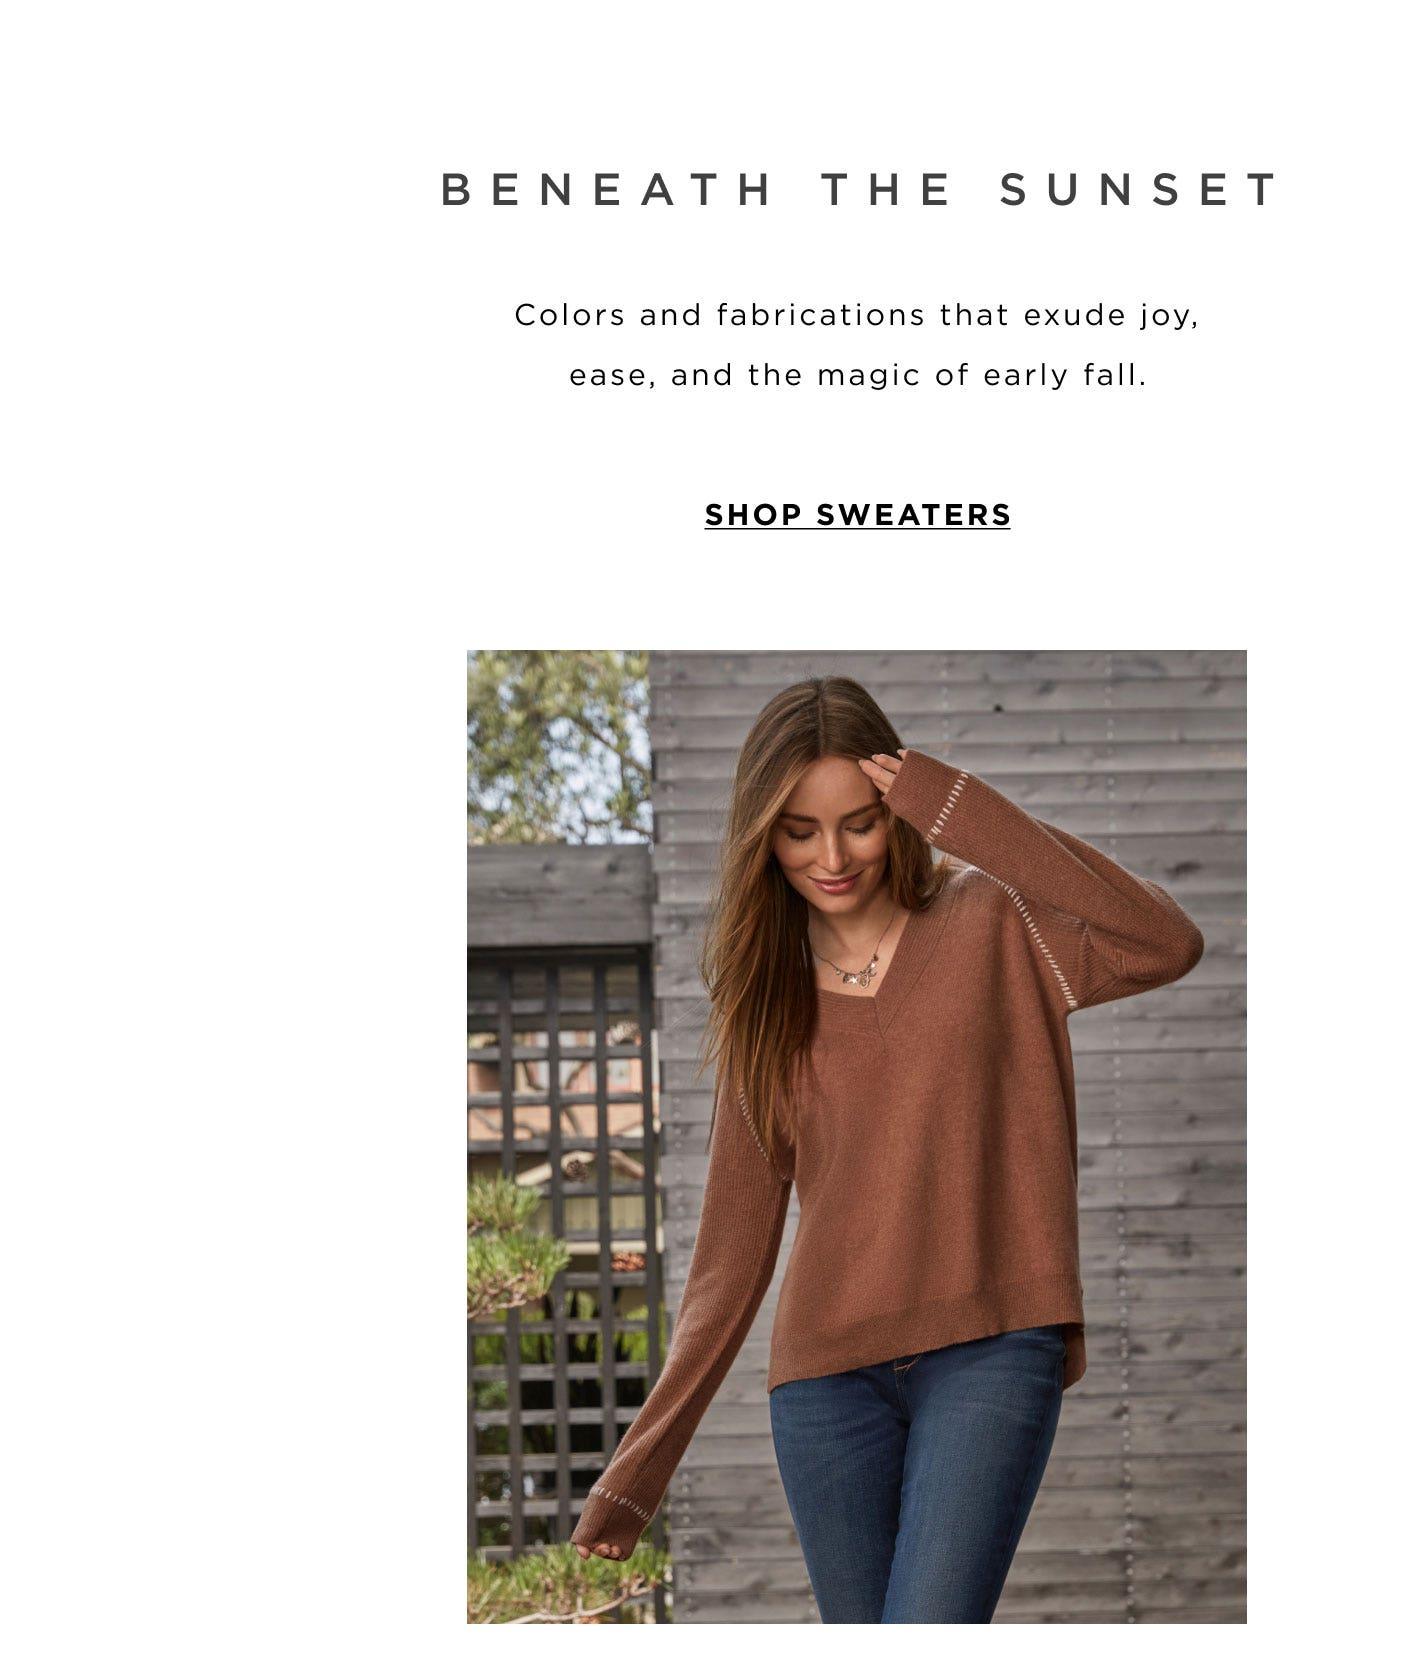 Beneath the Sunset – Colors and Fabrications that exude joy, ease, and the magic of early fall. Shop Sweaters.